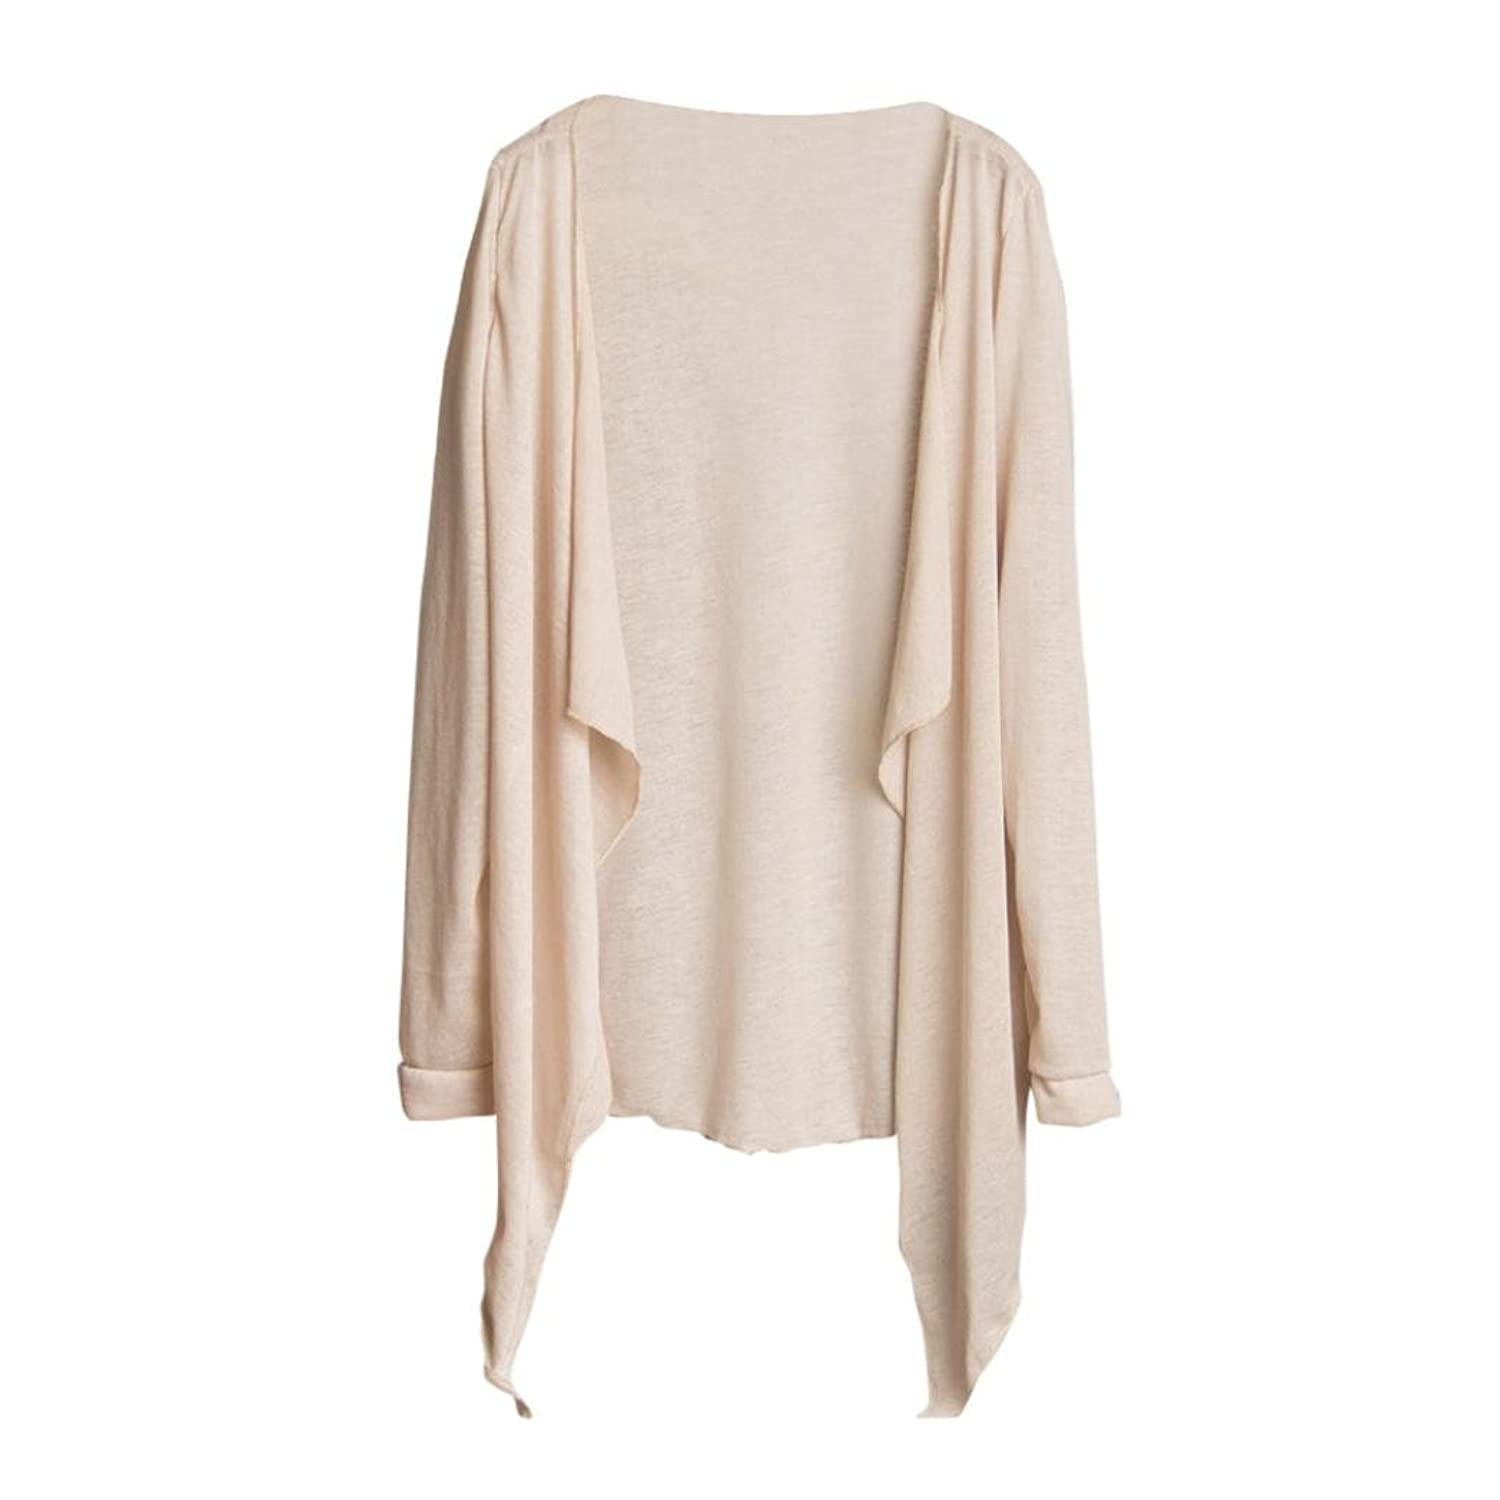 8b831a27a0 100%Cotton Imported Broadcloth Pull On closure womens long tie bell sleeve  chiffon blouse surplice v neck tunic shirts tops summer boat ruffle cold  shoulder ...